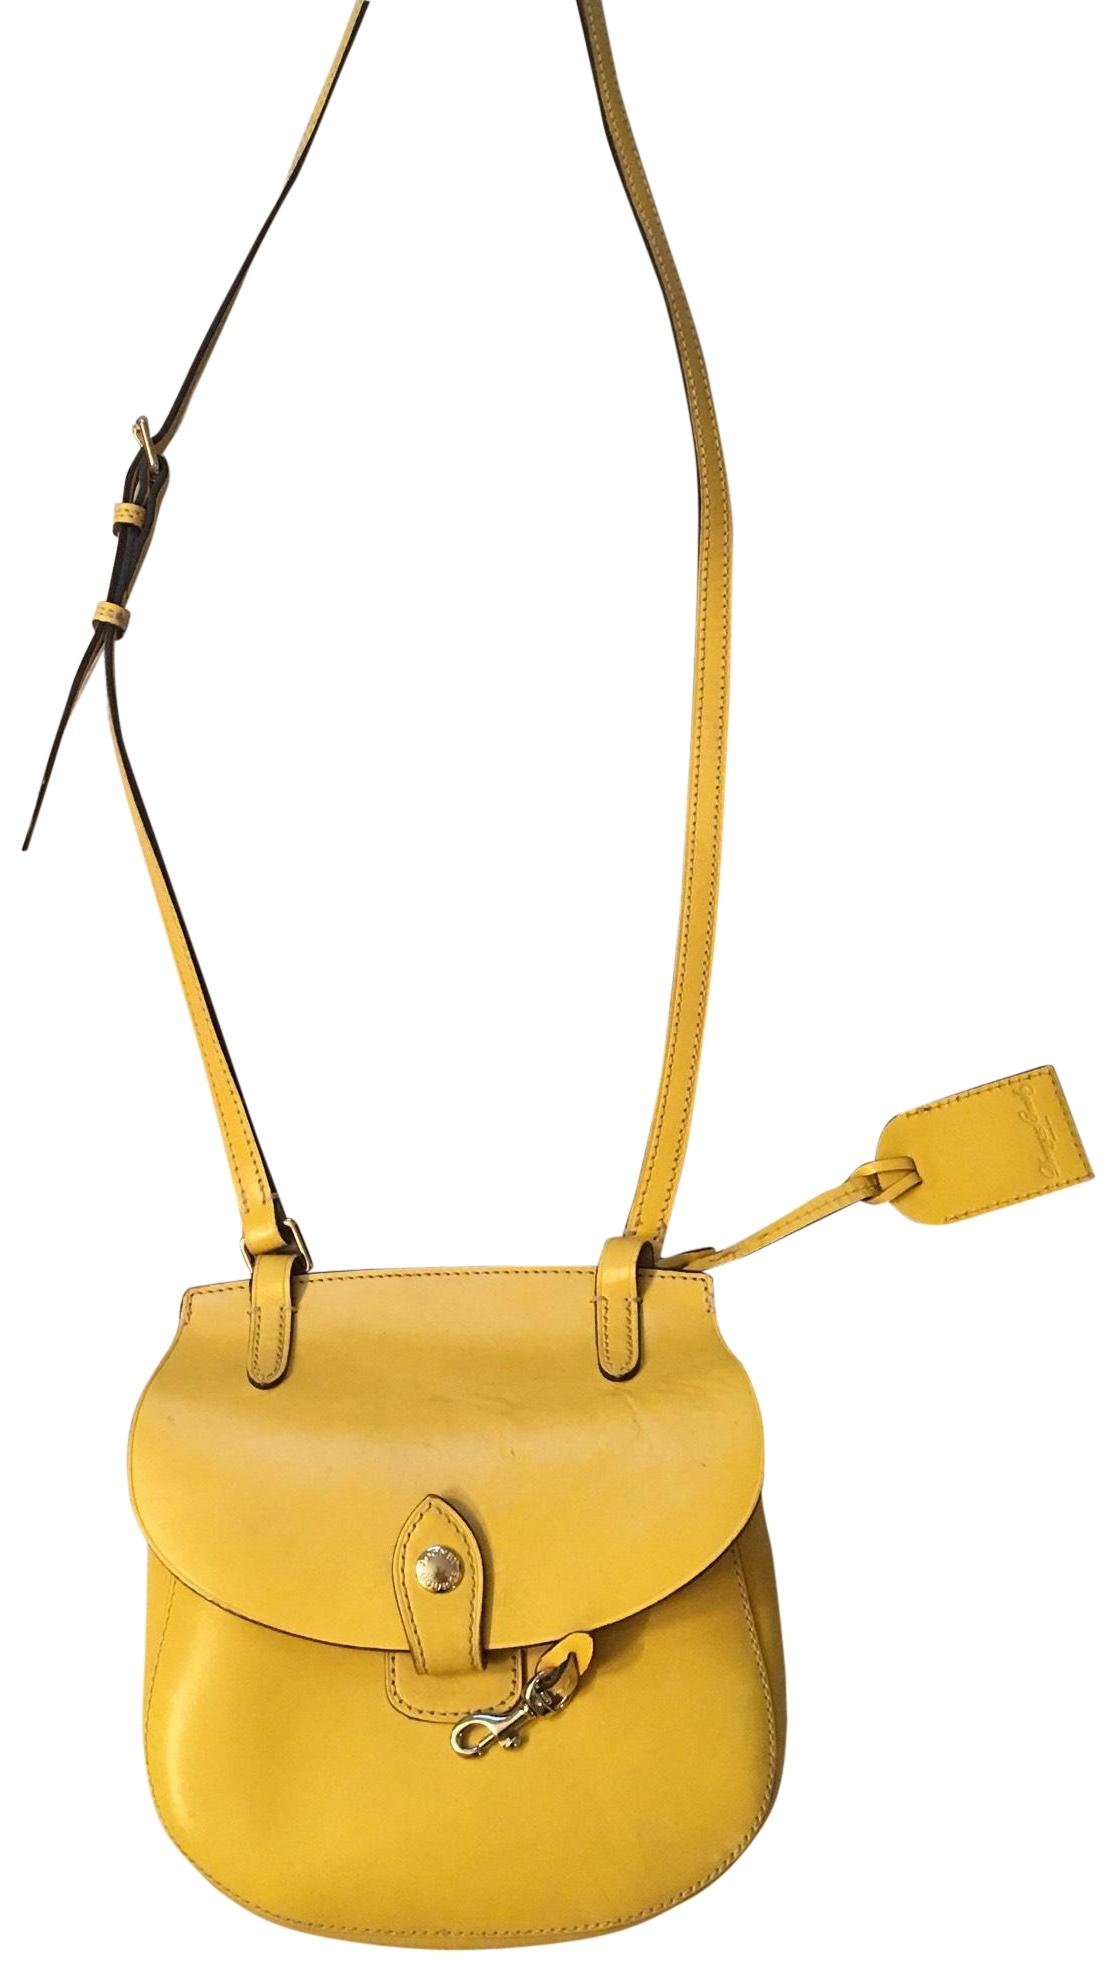 Dooney & Bourke Cross Body Bags - Up to 90% off at Tradesy